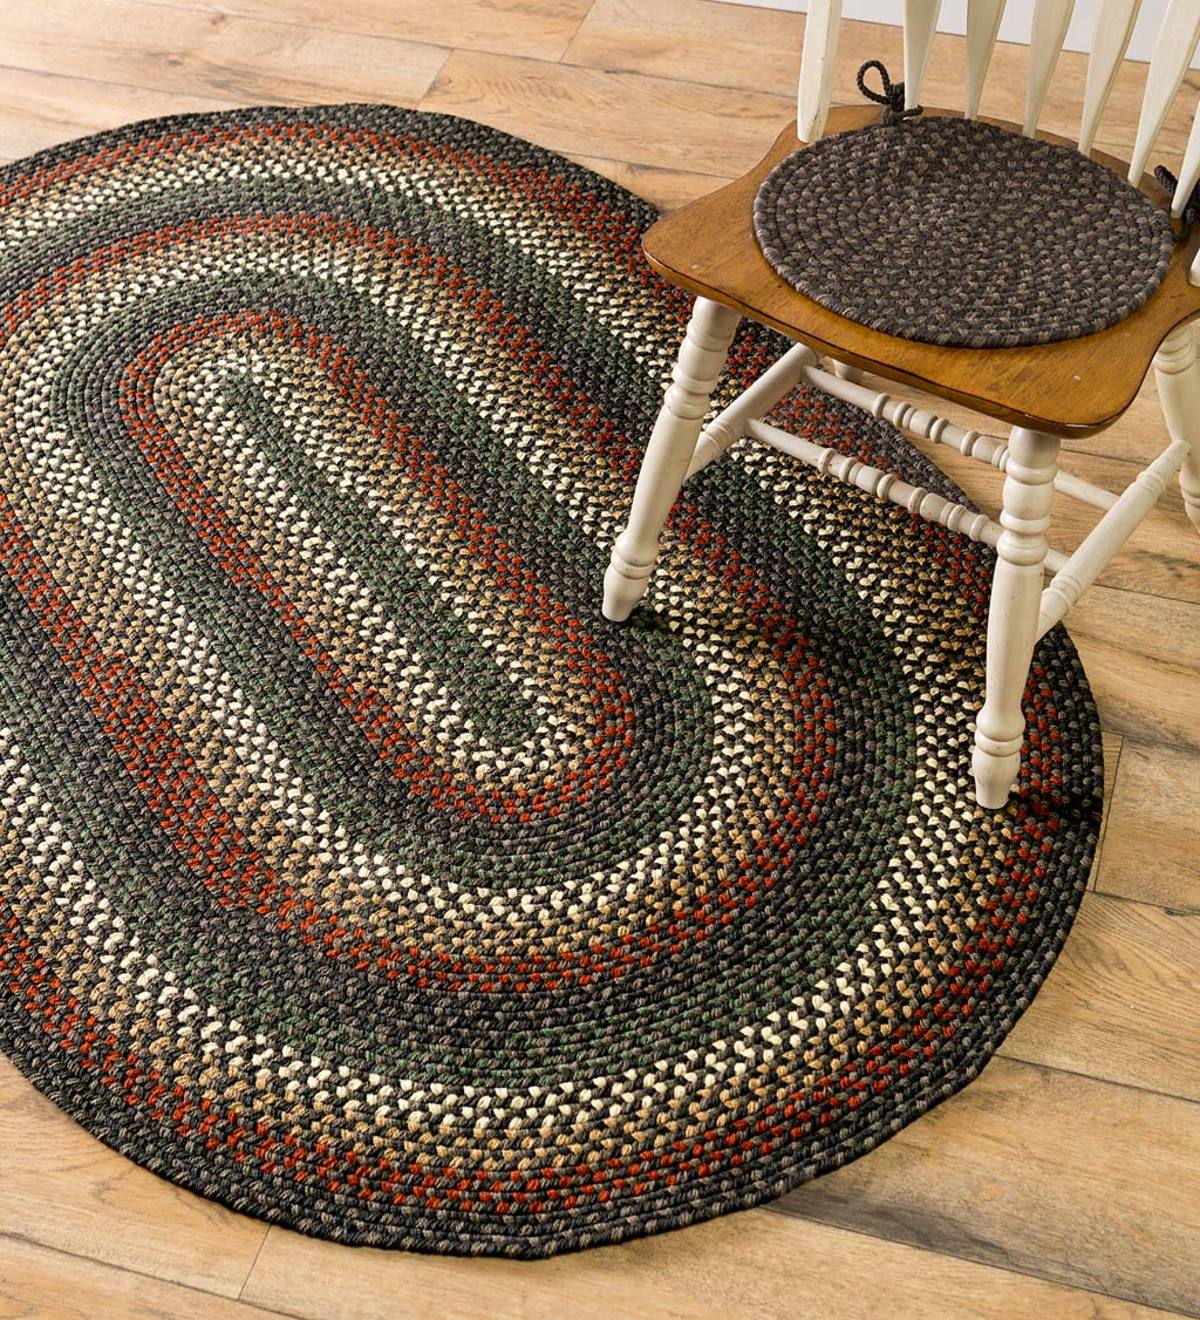 Indoor/Outdoor Braided Polypro Roanoke Rug, Made In USA